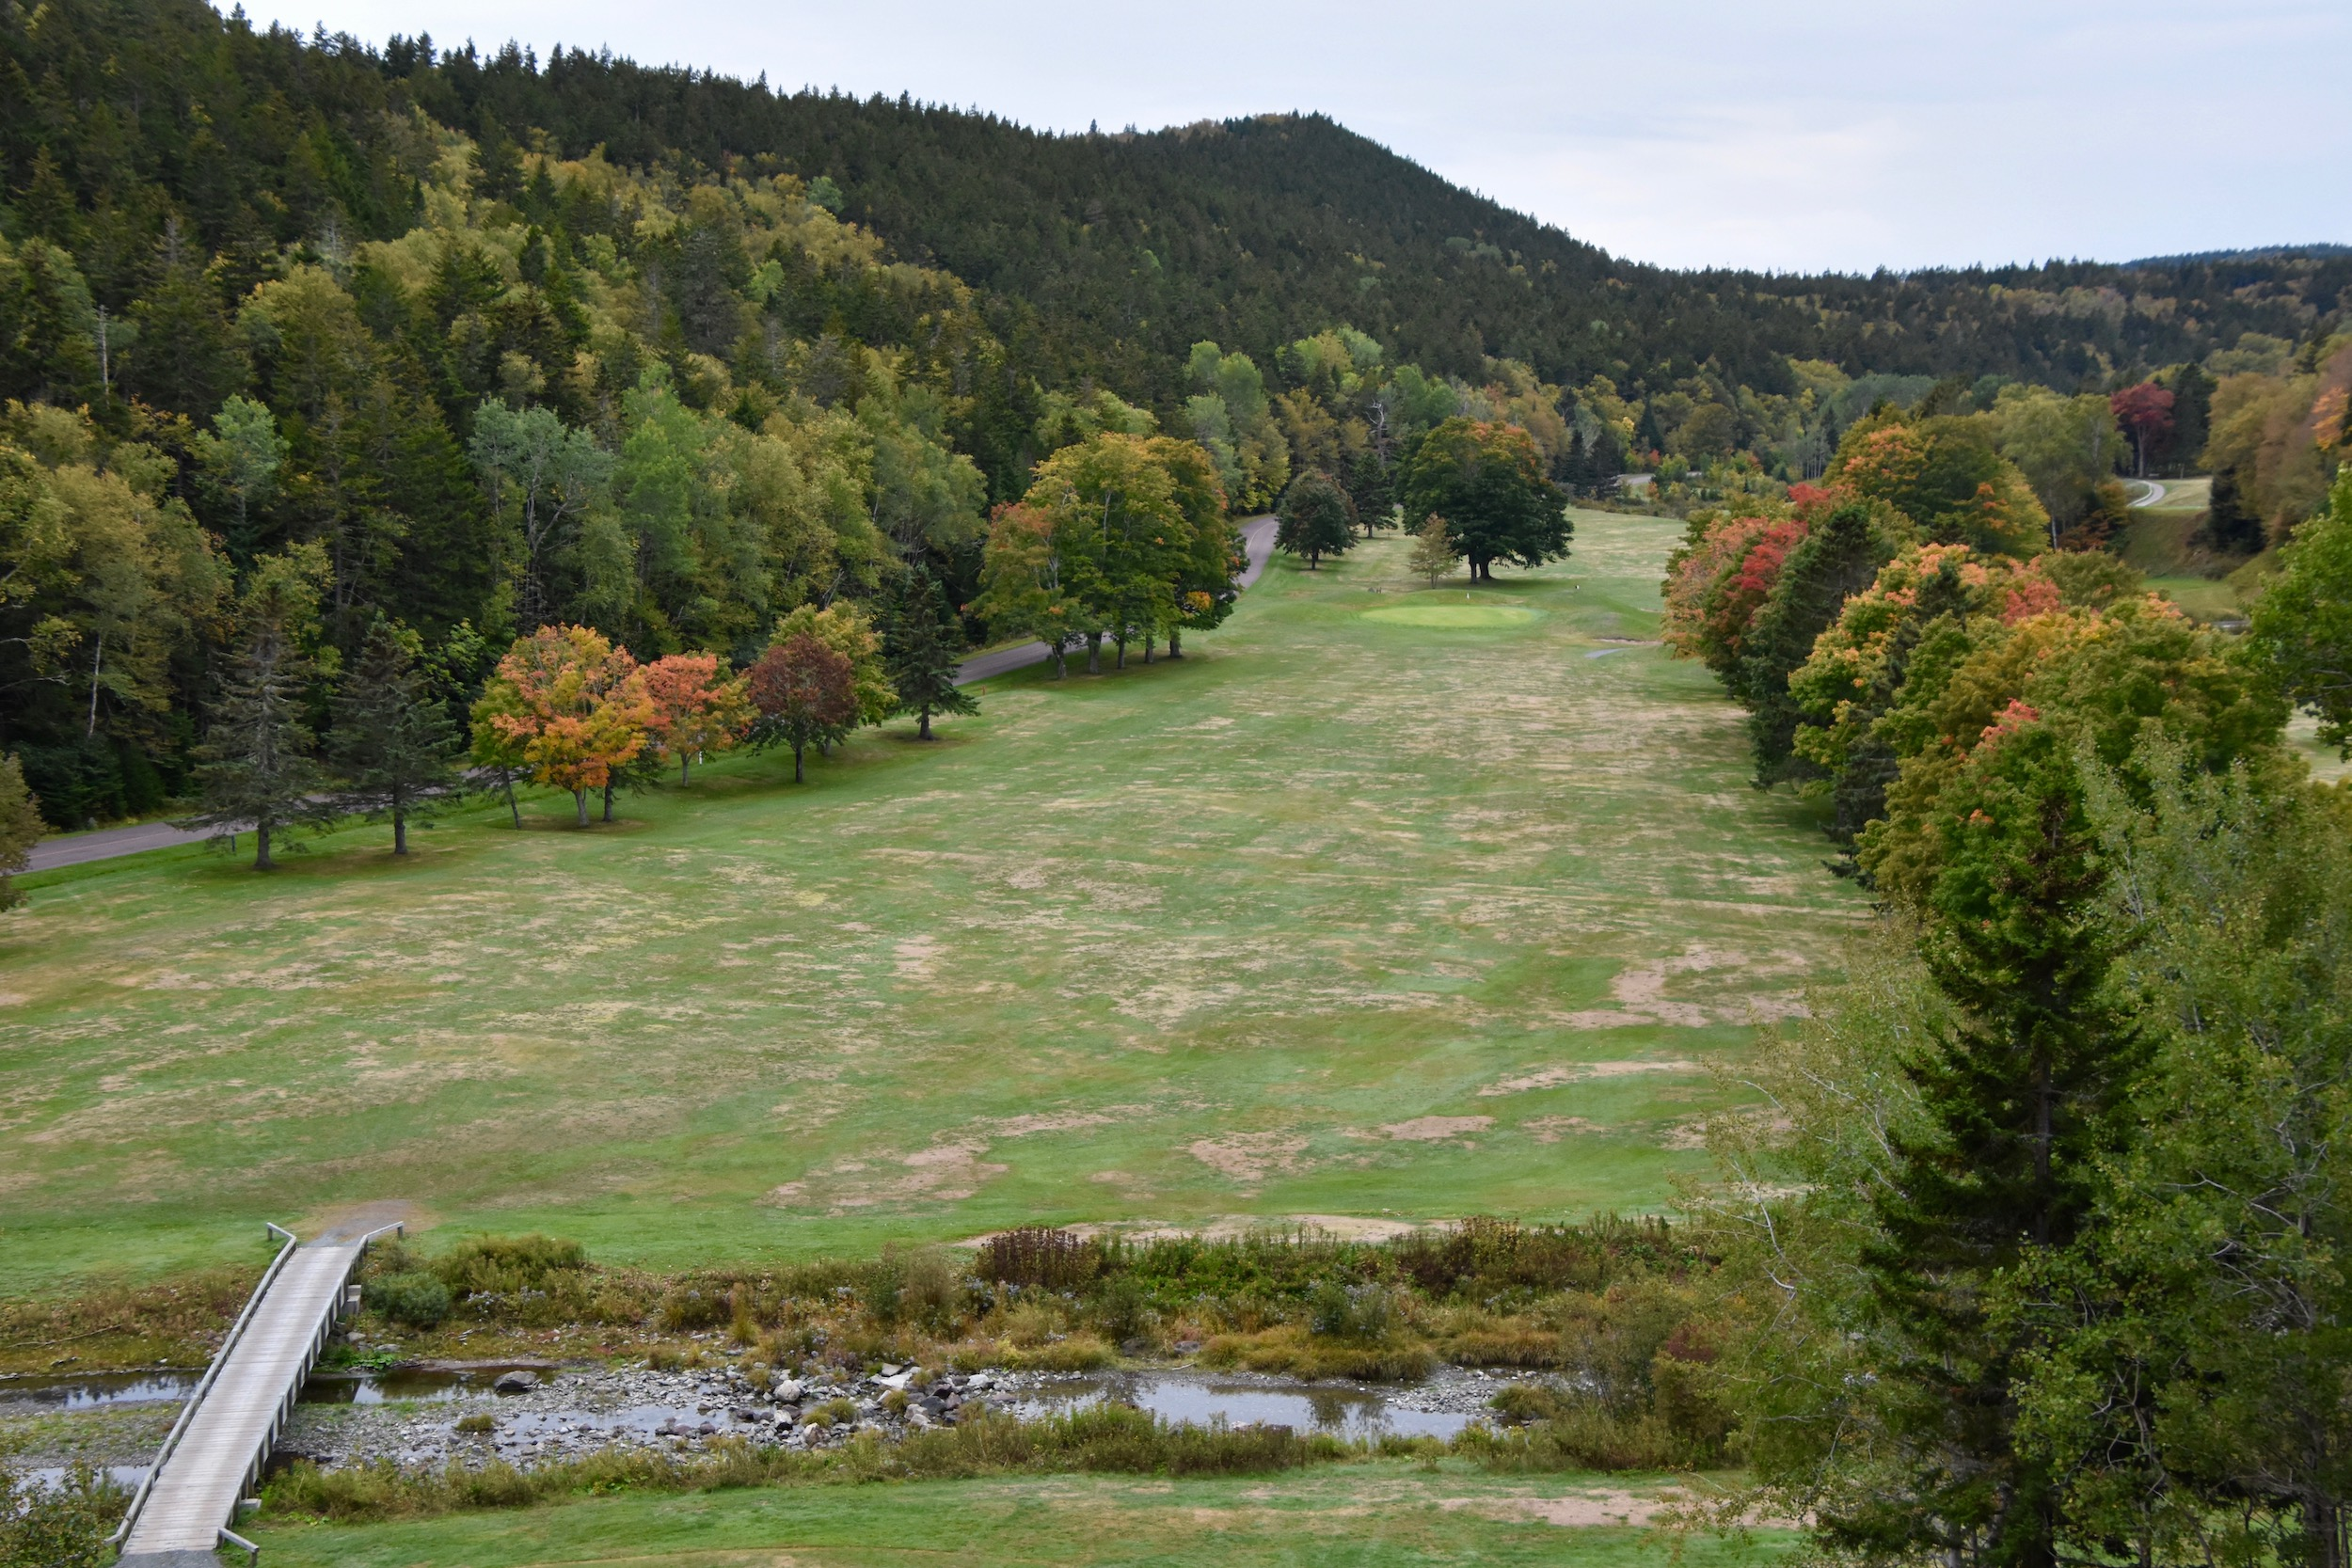 #1 - Fundy Golf Course